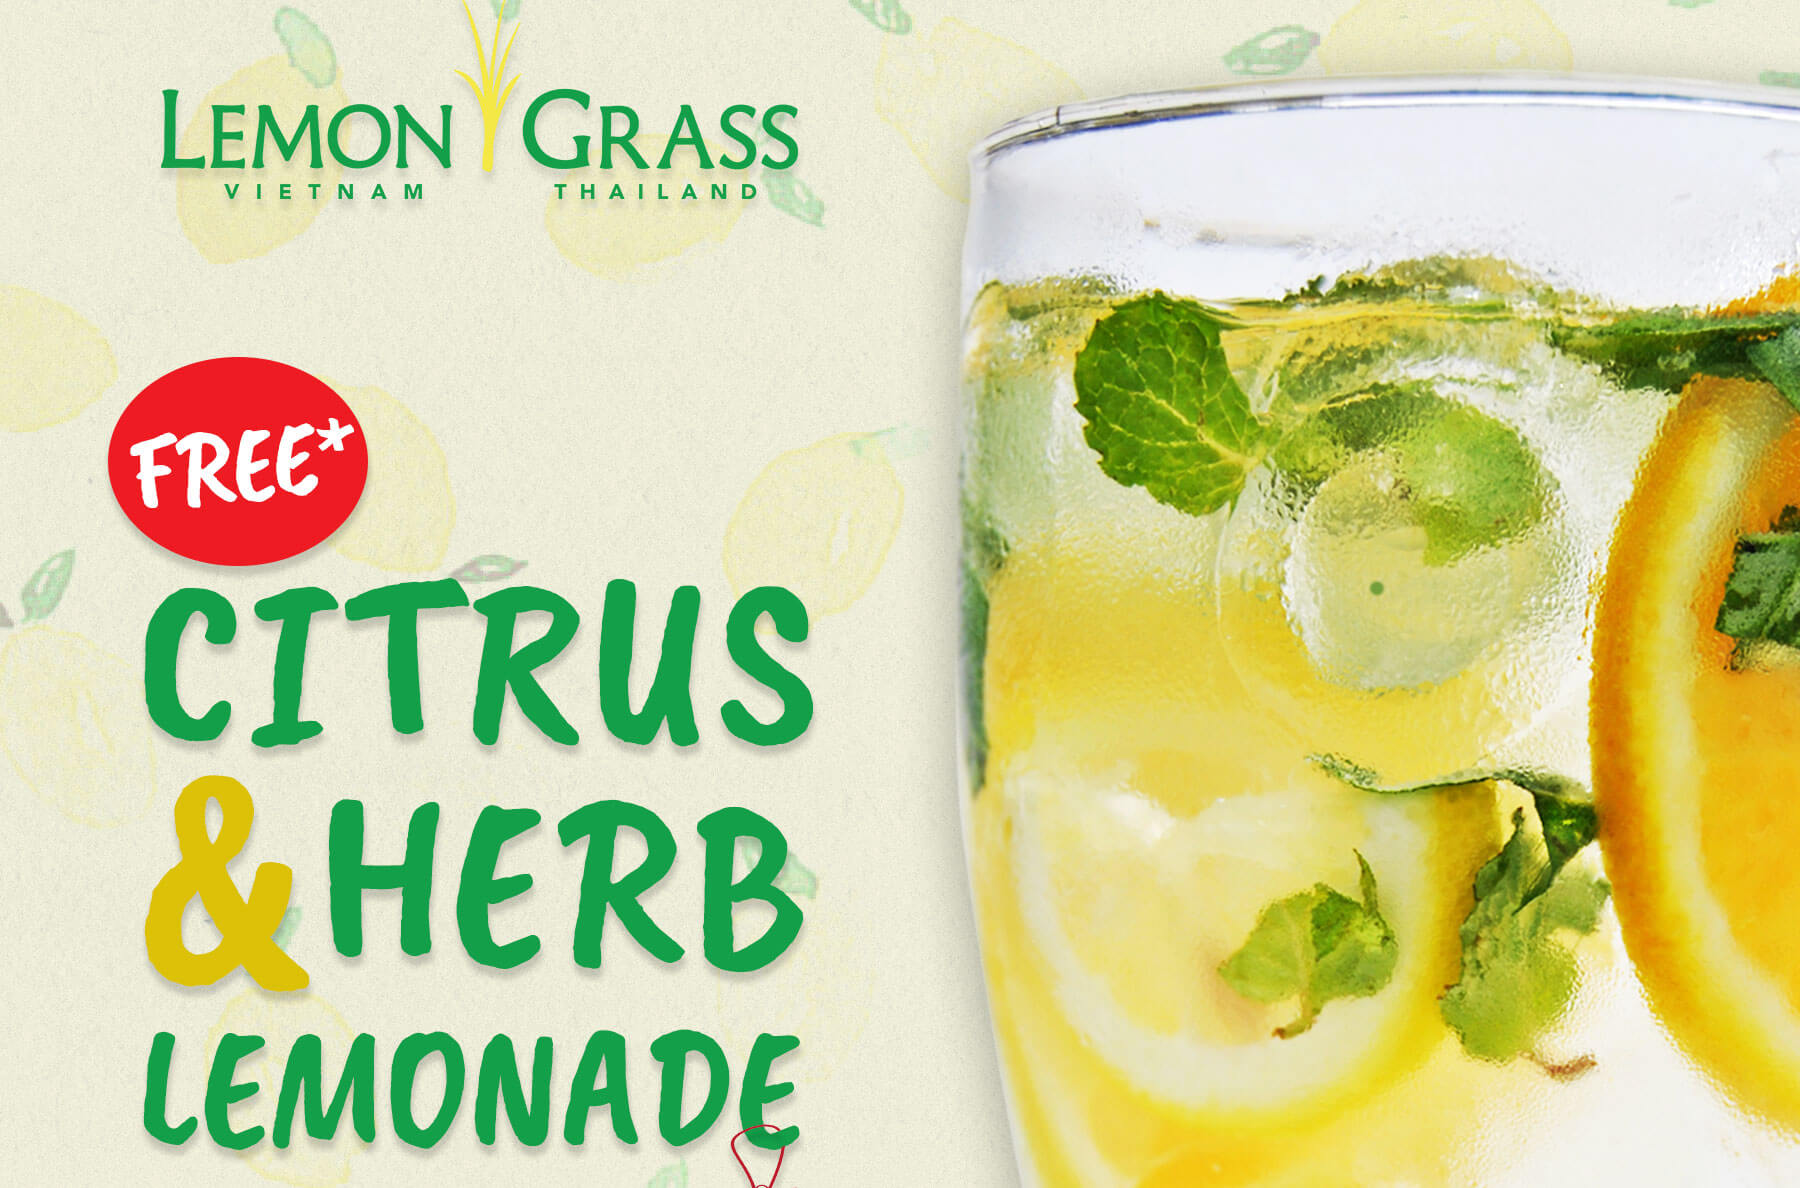 Lemon Grass offers free glass of Citrus Herb Lemonade with P500 single receipt purchase